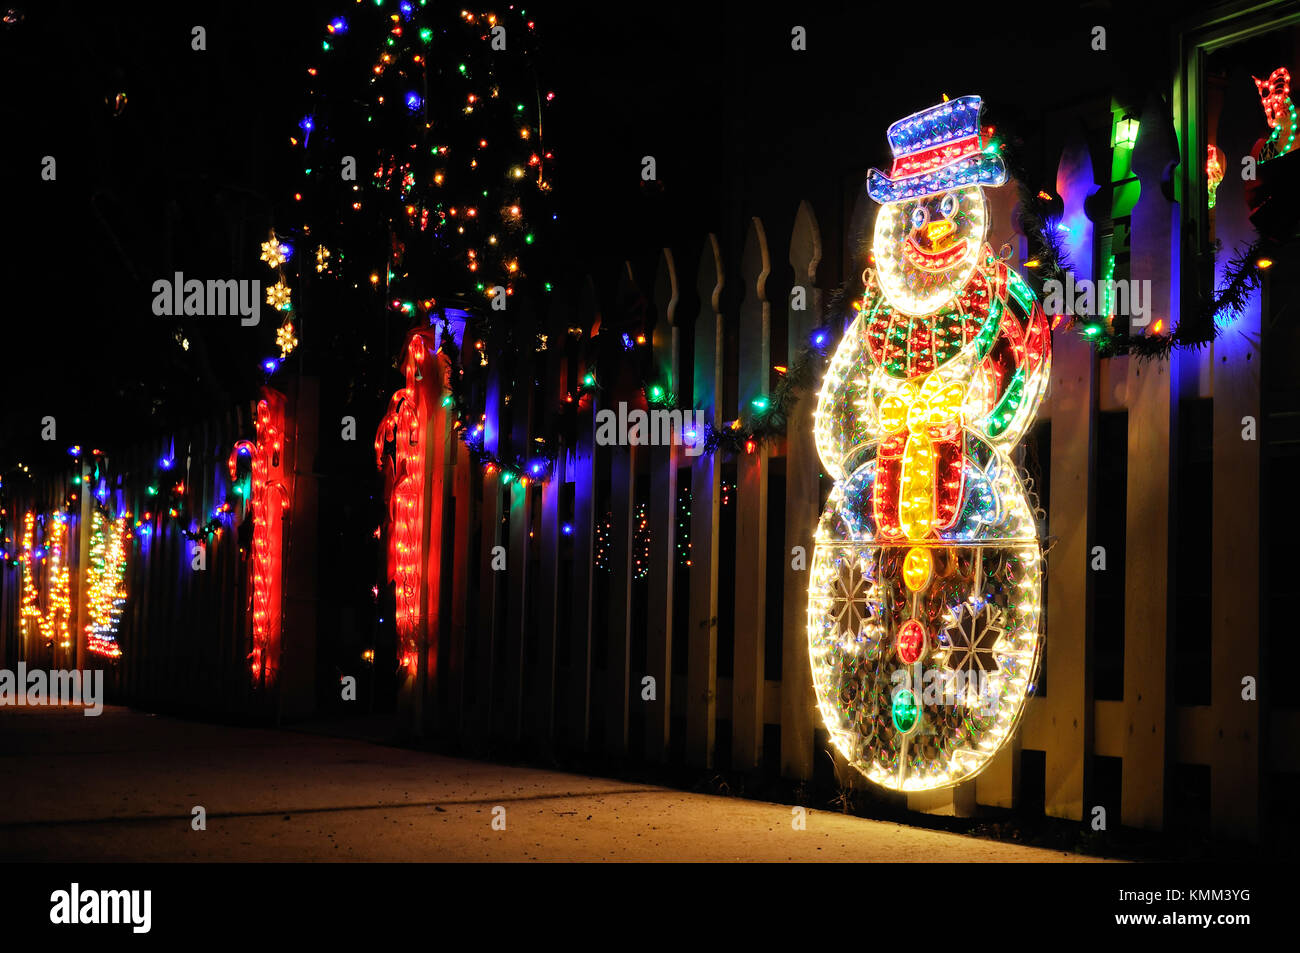 Christmas lights house outdoor night stock photos christmas christmas lights outdoor display with snowman and candy canes on garden fence colorful aloadofball Images